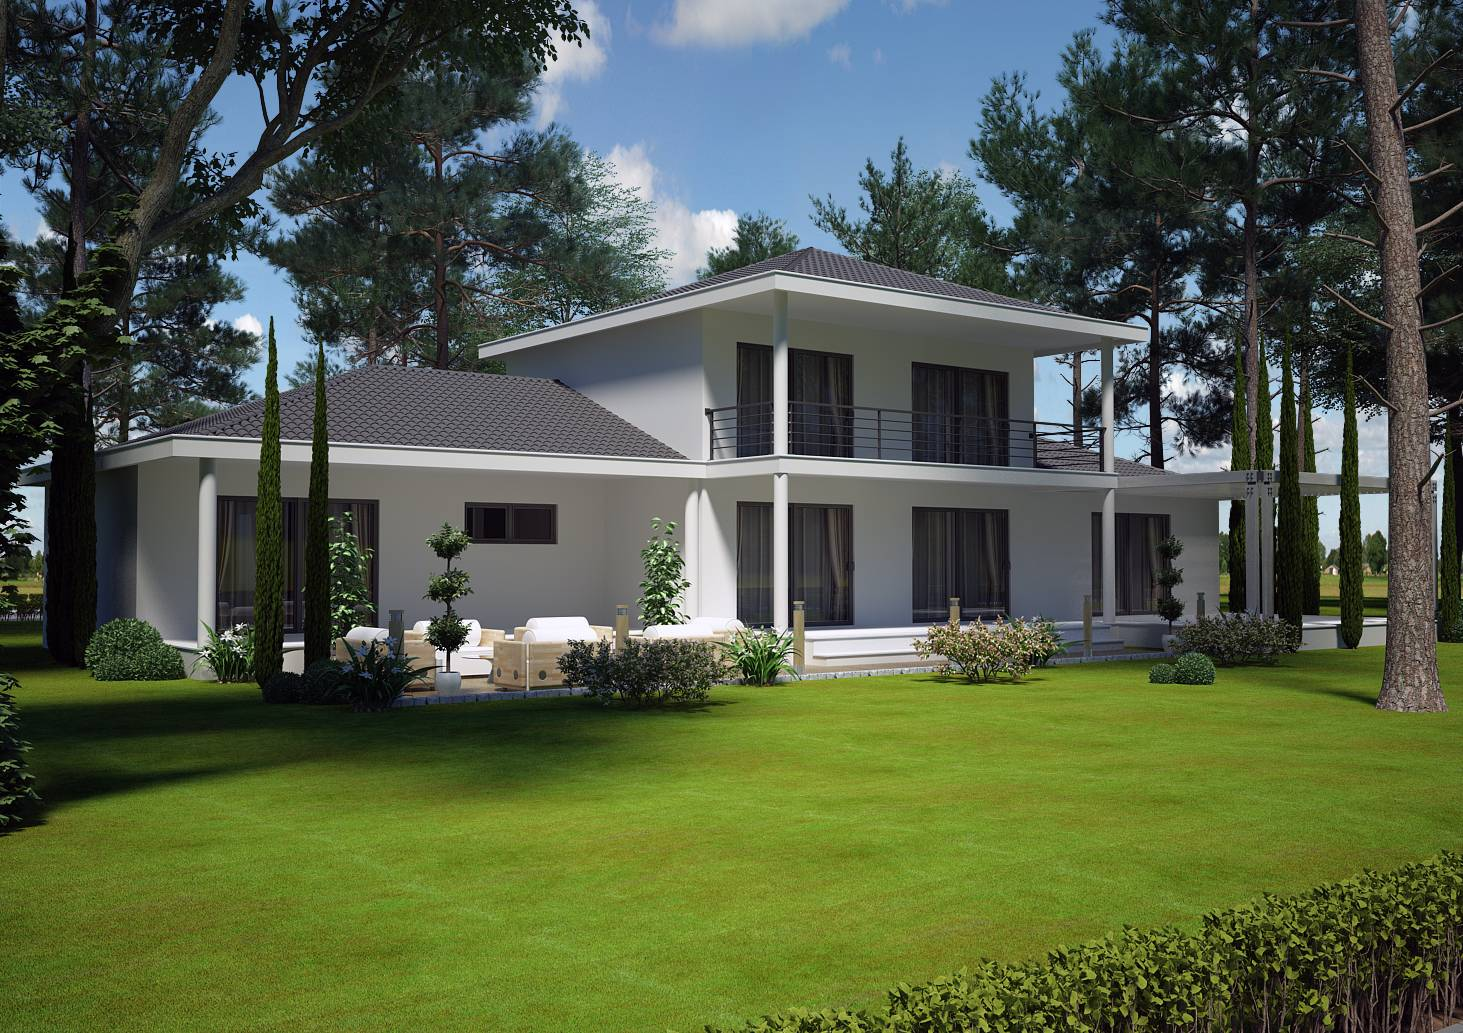 Villa contemporaine 150 m2 etage mod le pinede salon for Modele maison 2 etage avec garage